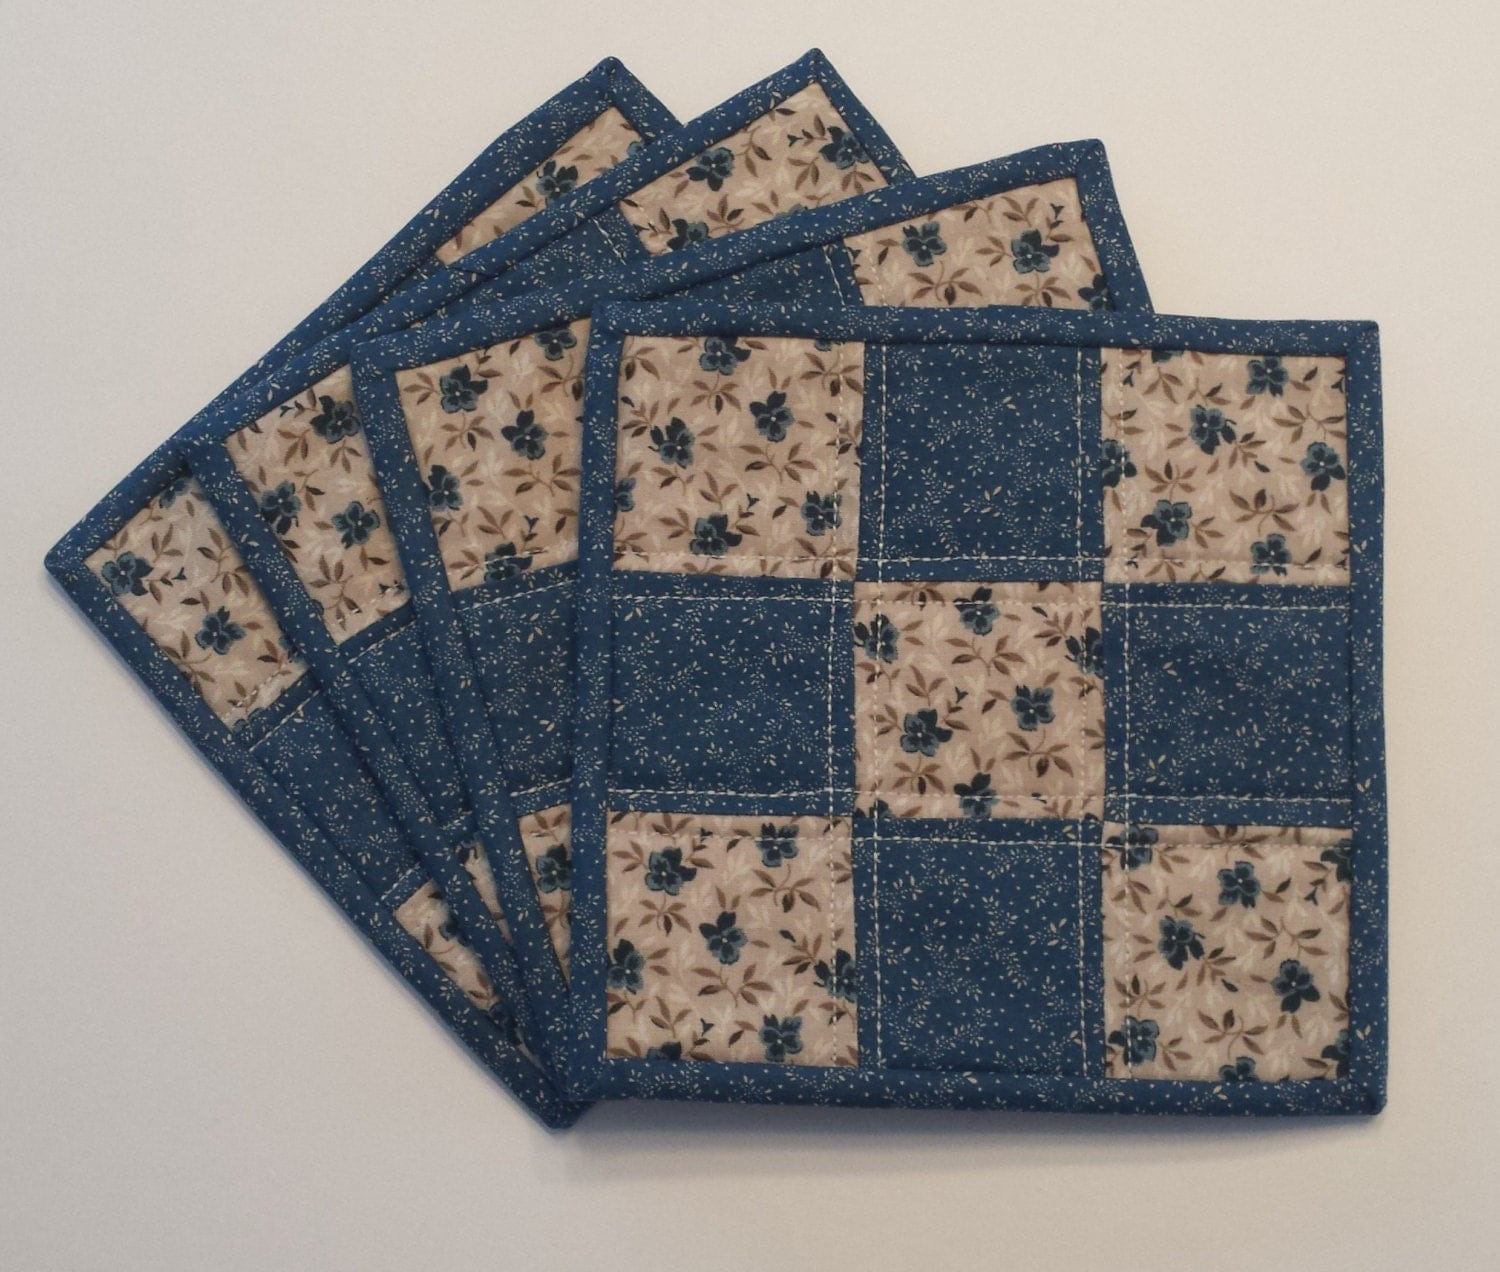 Quilted Mug Rugs Mug Rugs Quilted Coasters Coasters